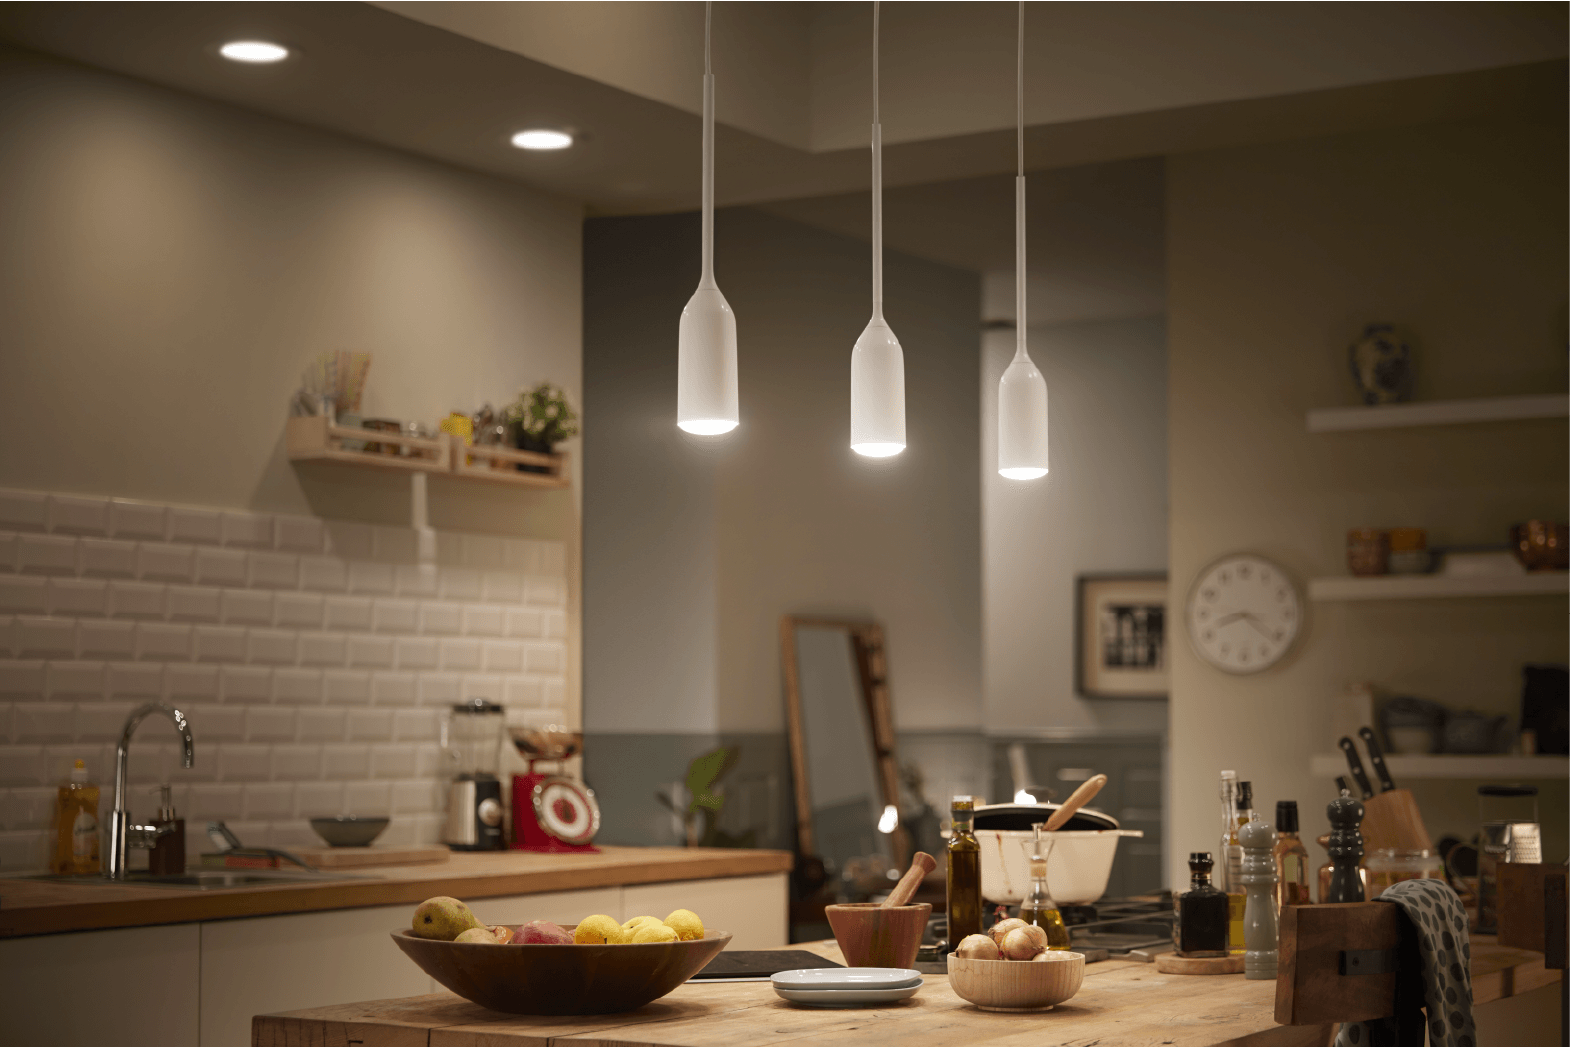 6 Kitchen Lighting Ideas - Meethue | Philips Hue on lights for kitchen sink, lights for furniture, lights for christmas, lights for kitchen islands, lights for landscaping, lights for baby, lights for living rooms, lights for decor, lights for fireplace, lights for lighting, lights for windows, lights for dining room, lights for garden, lights for construction, lights for valentine's day, lights for halloween, lights for doors, lights for kitchen cabinets, lights for small kitchen, lights bedroom ideas,